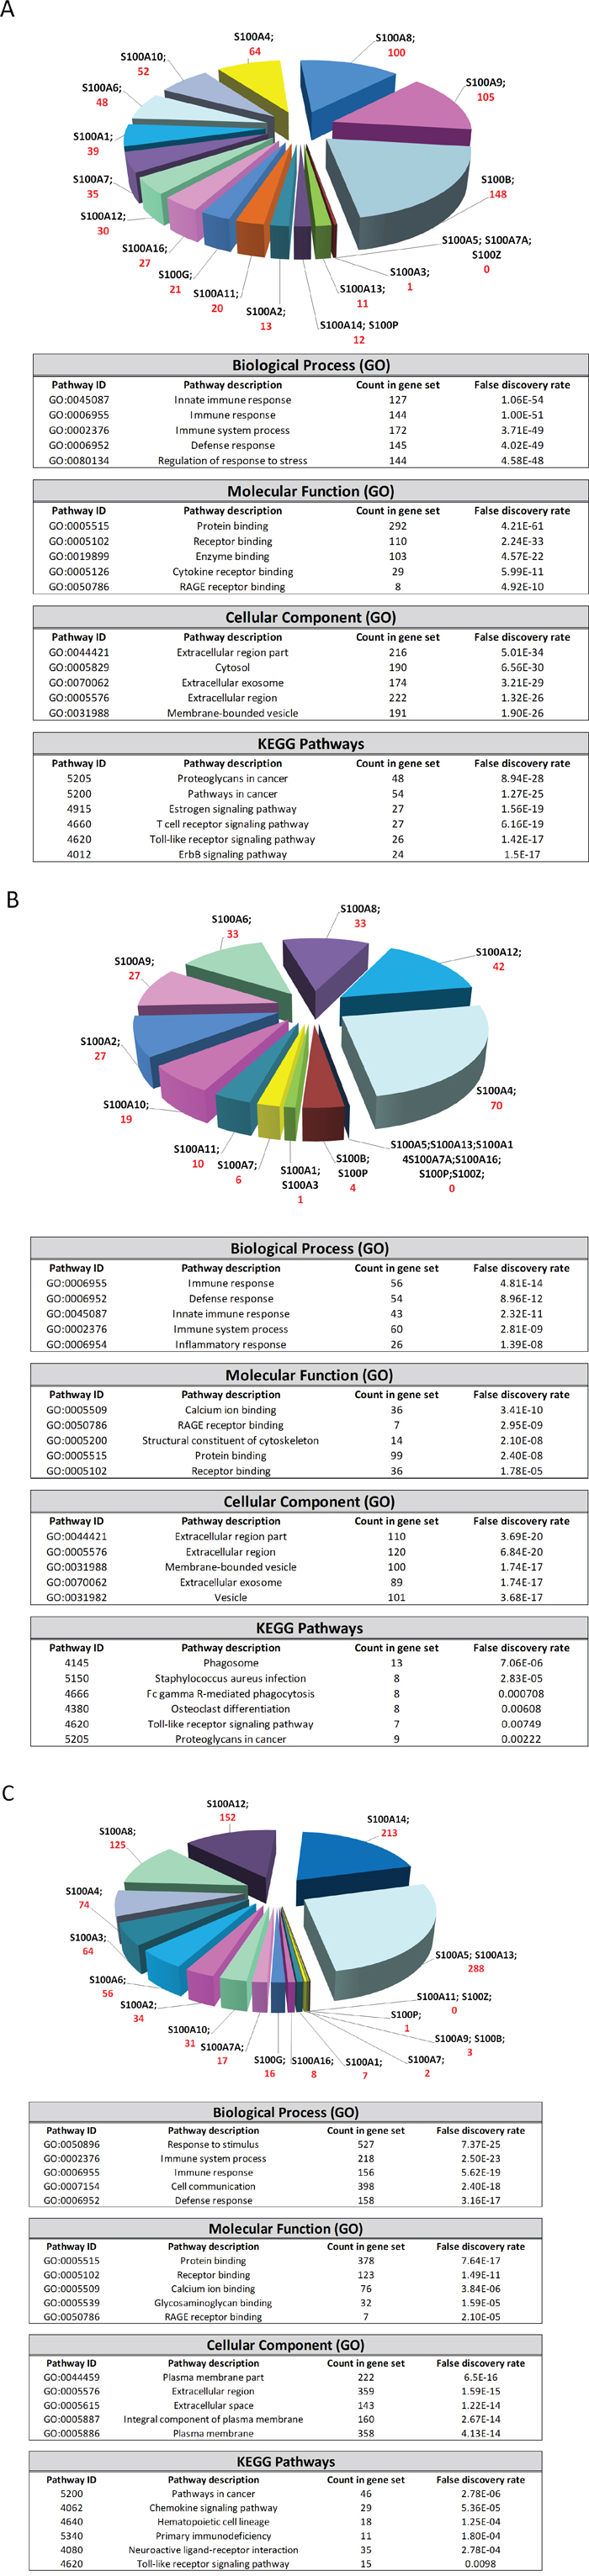 S100-associated genes analyzed with STRING (A), GOBO (B) and ONCOMINE (C) databases.